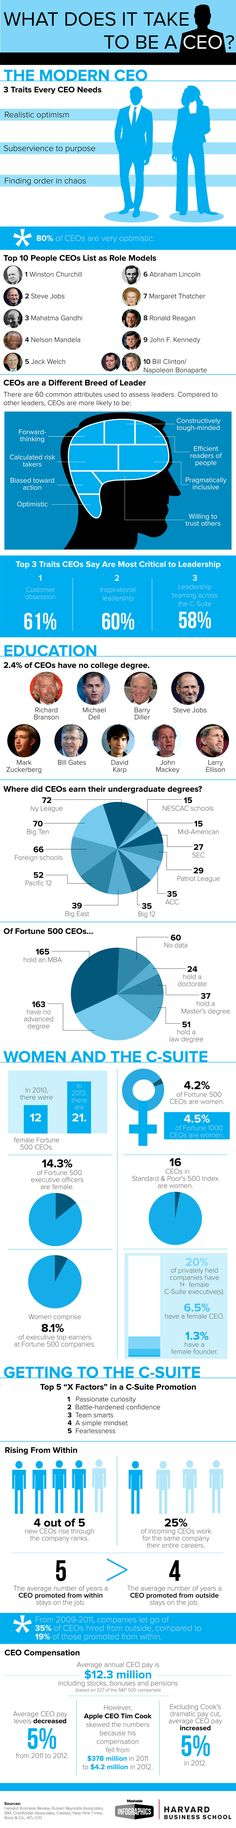 Got what it takes to be a CEO? http://mashable.com/2013/10/17/ceo-infographic/